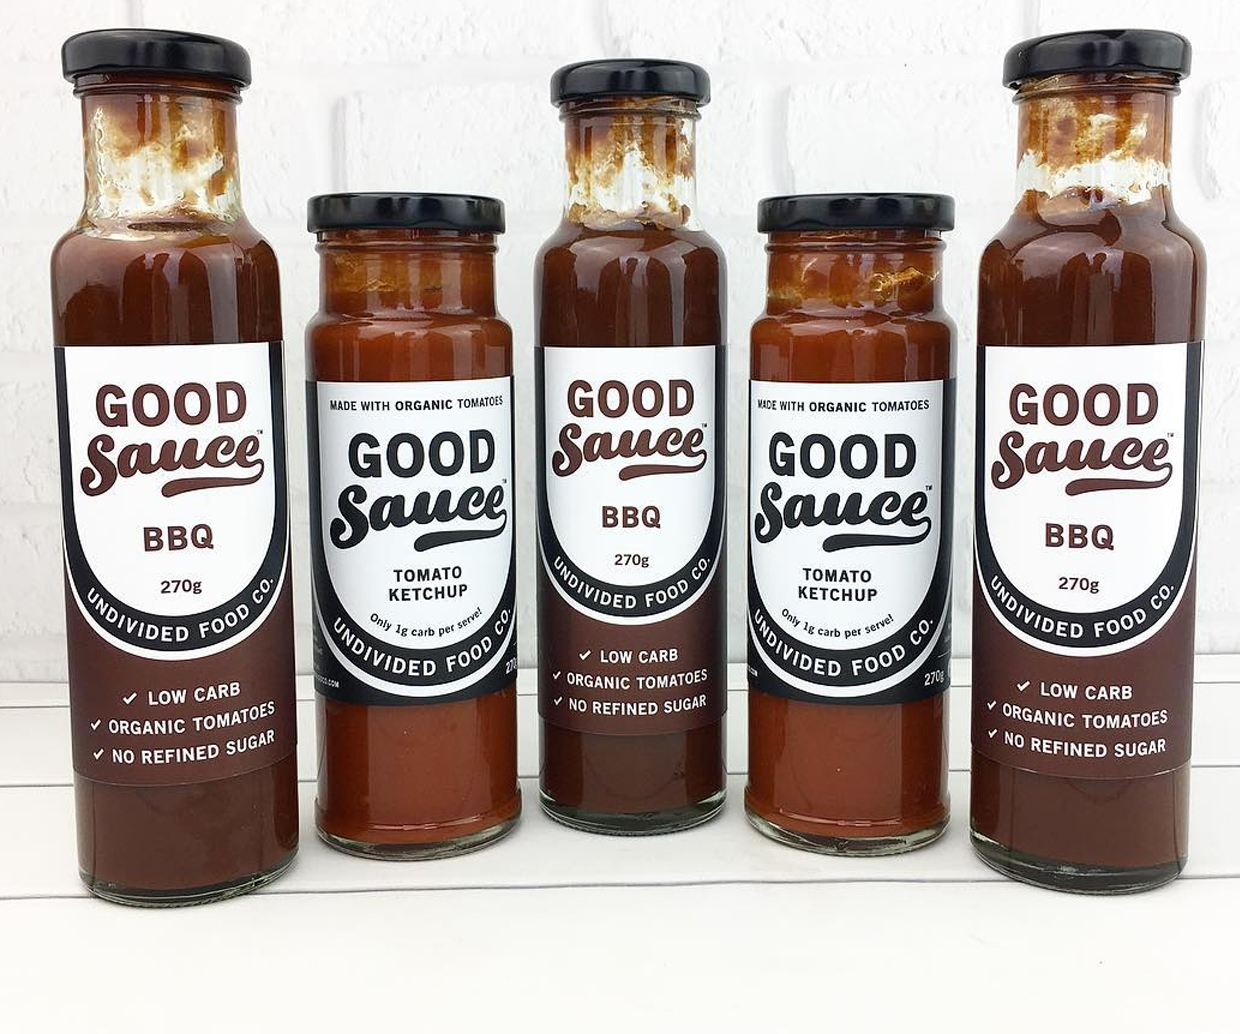 sauces lined up